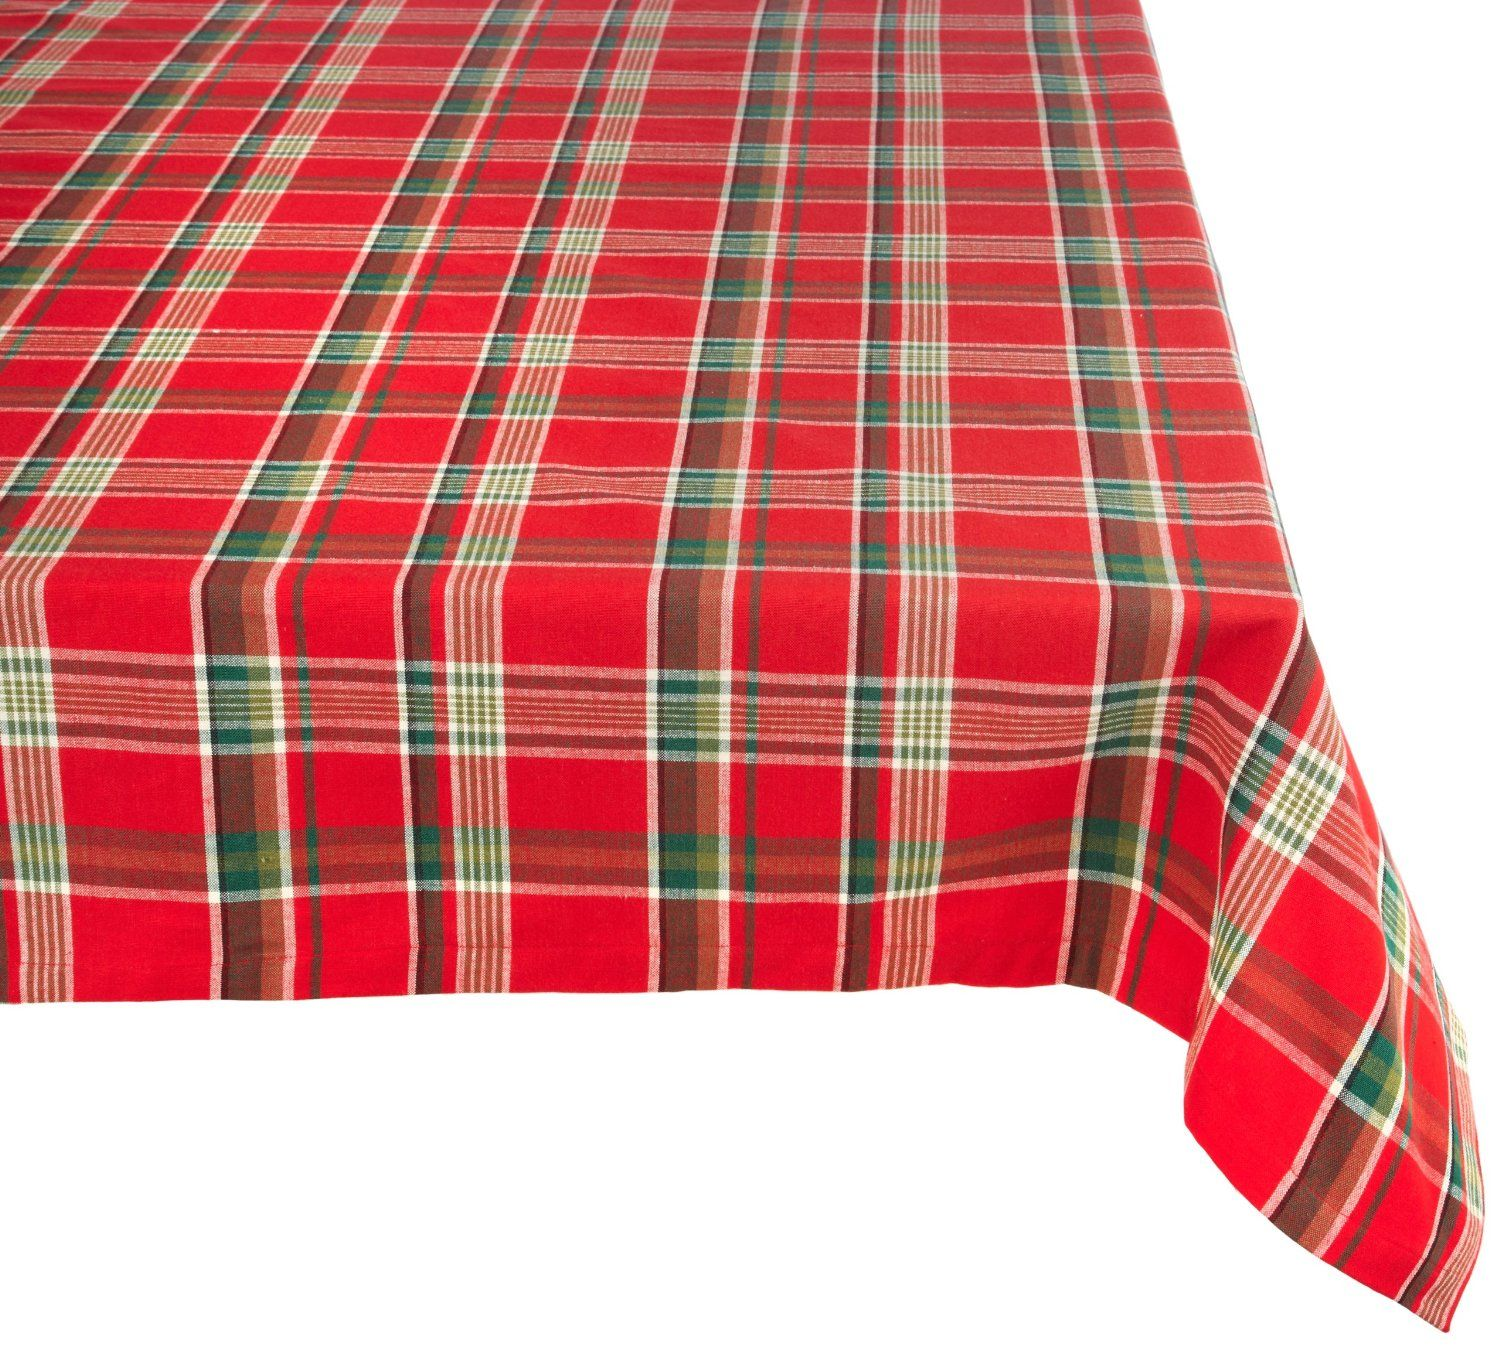 Amazon Com Dii 100 Percent Cotton Fabric Tablecloth 60x84 60x104 60x120 70 Round Tango Red Plaid Seats 6 To Plaid Tablecloth Design Imports Table Cloth